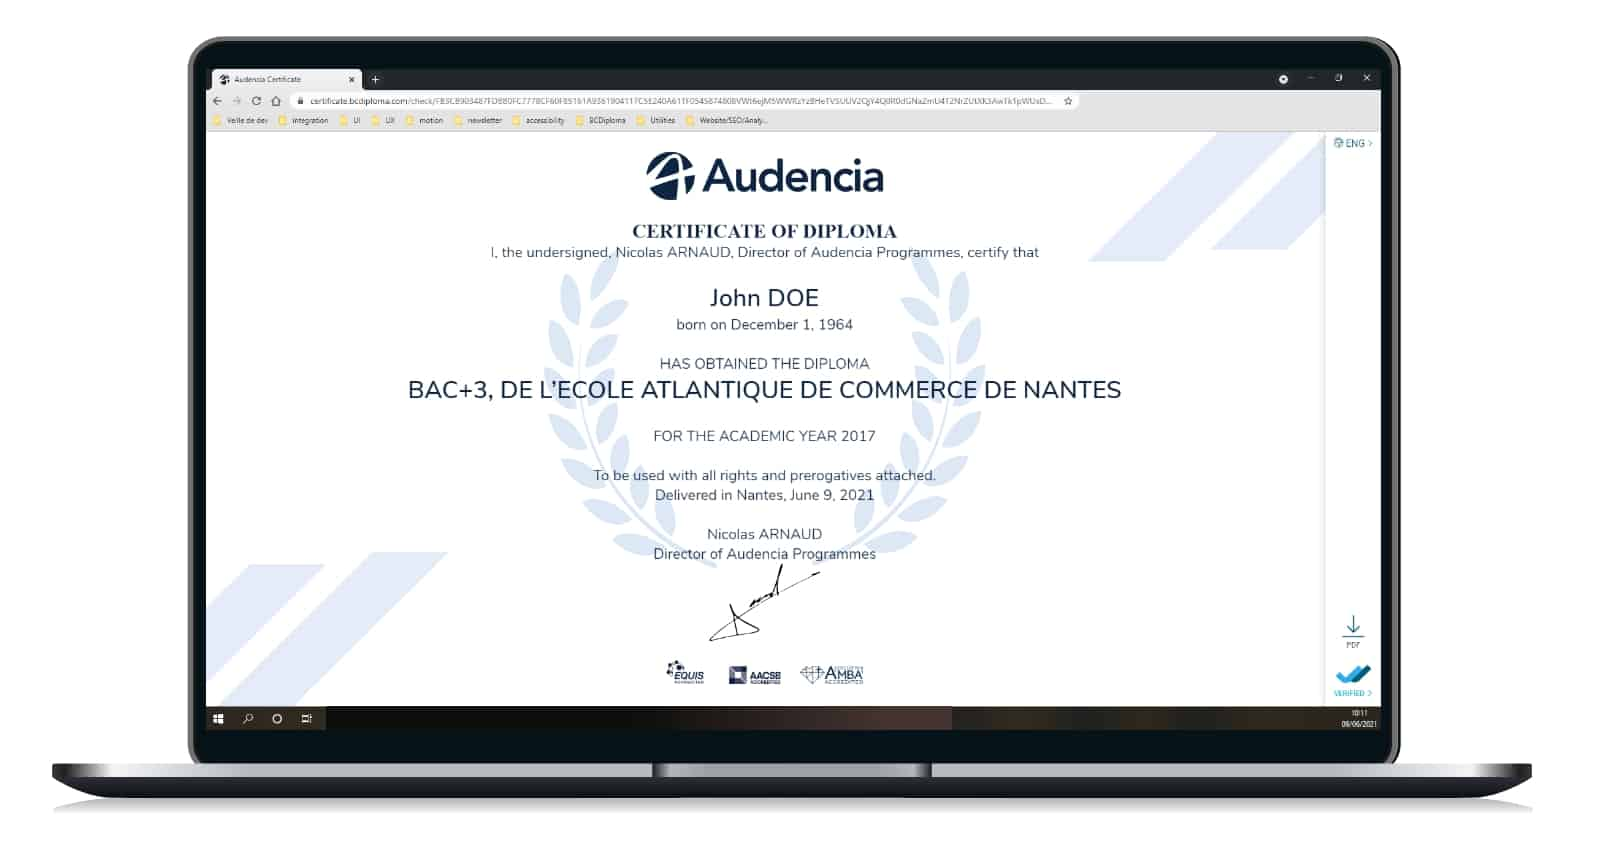 Sample of the digital credential Audencia made by BCdiploma